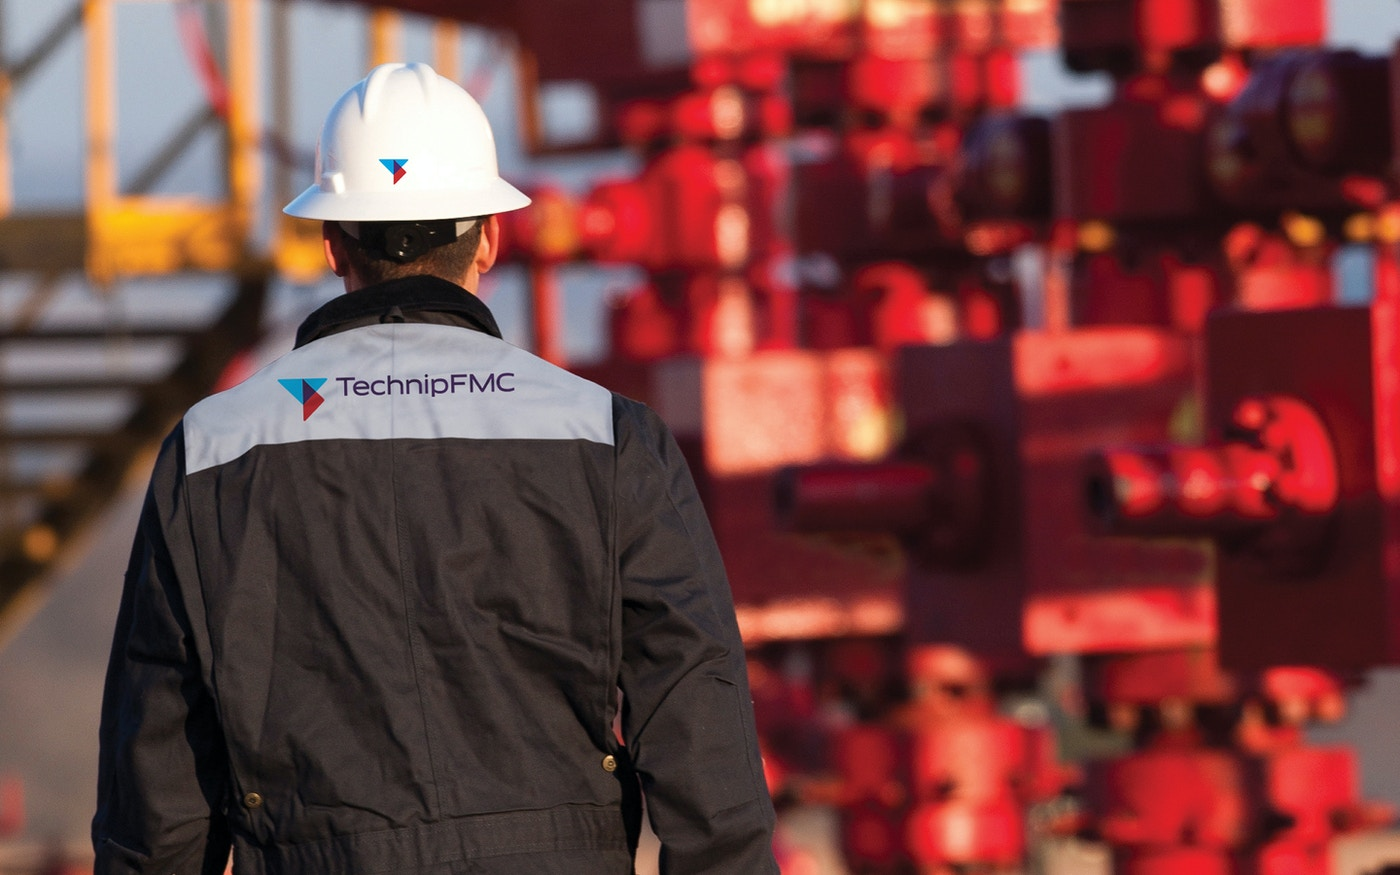 Technip and FMC